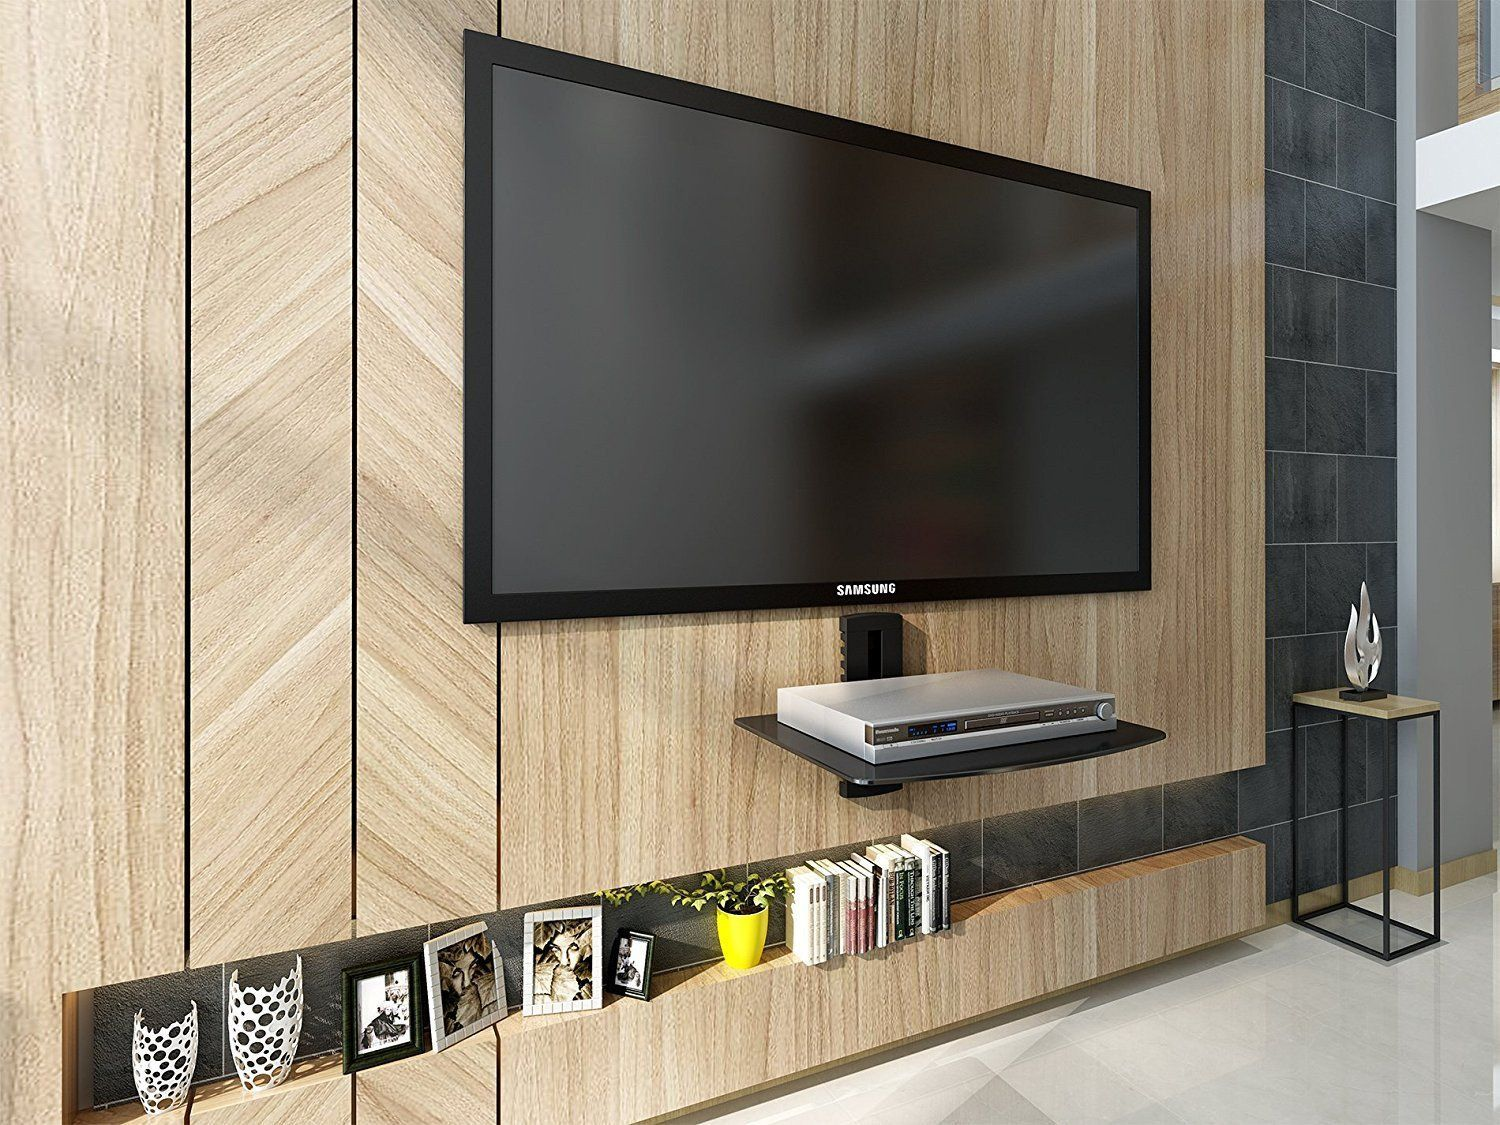 Wall Mounted Av Shelf